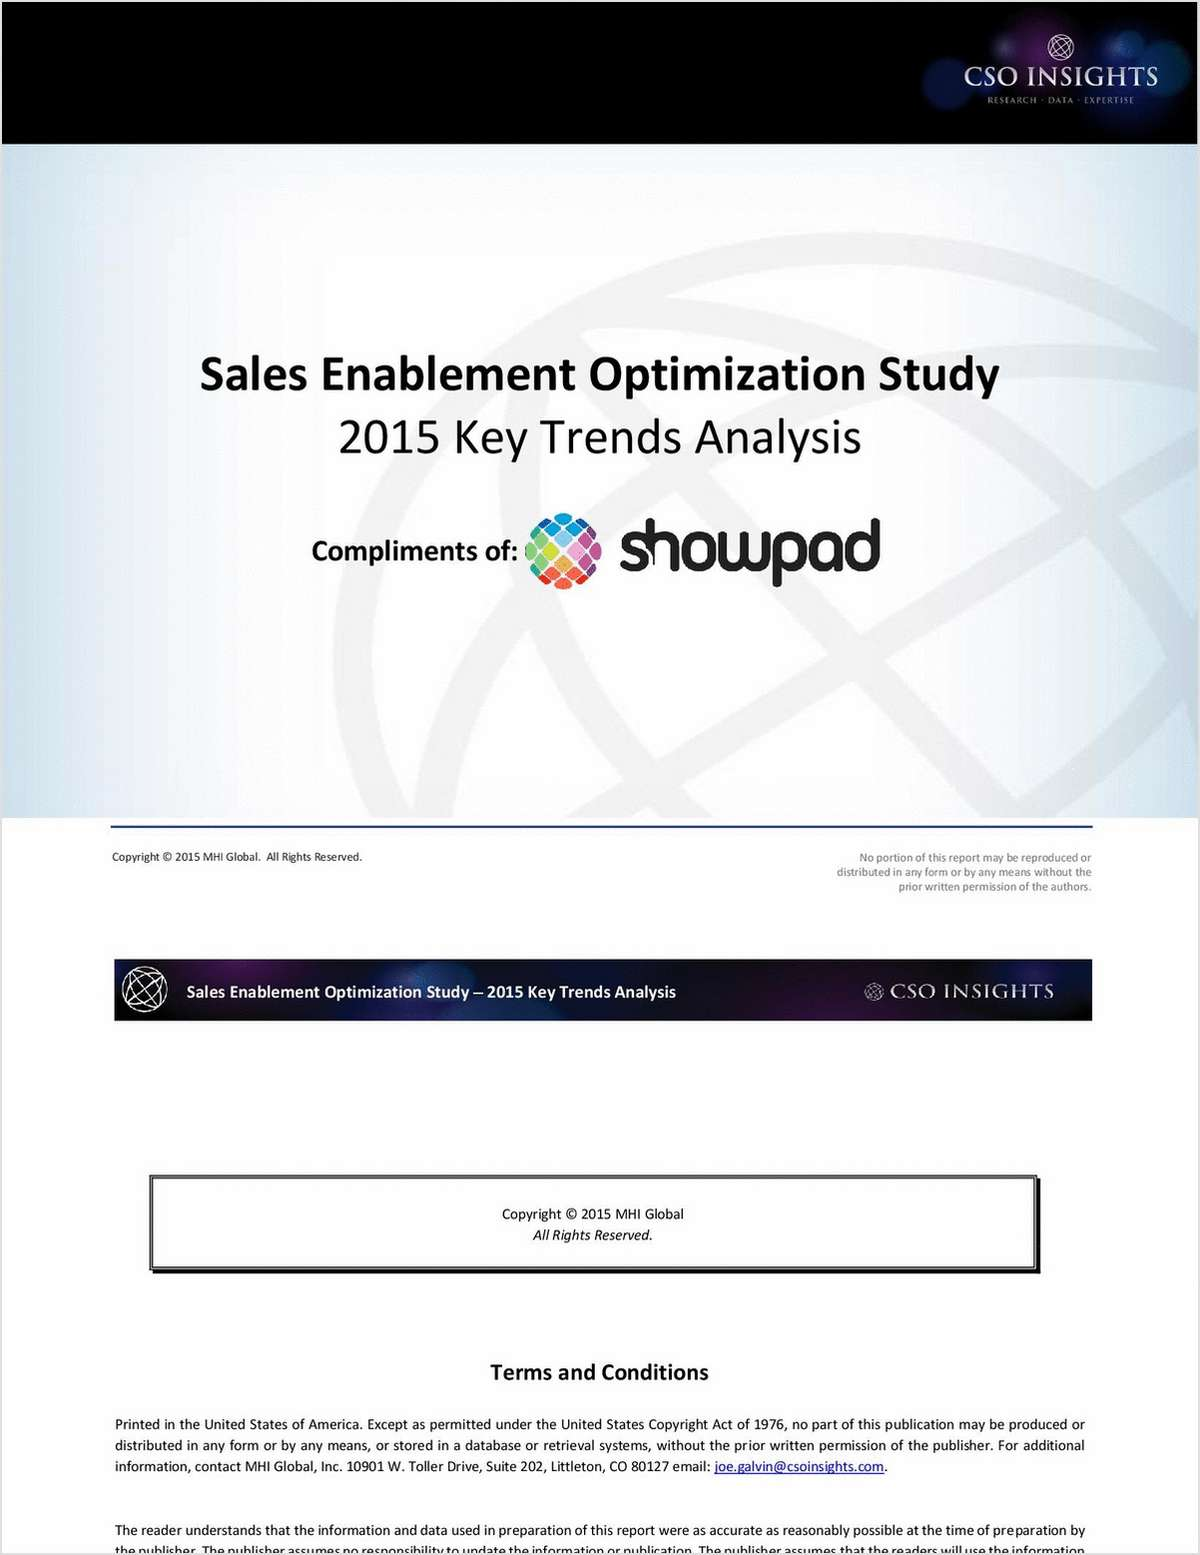 CSO Insights: Sales Enablement Optimization Study 2015 Key Trends Analysis